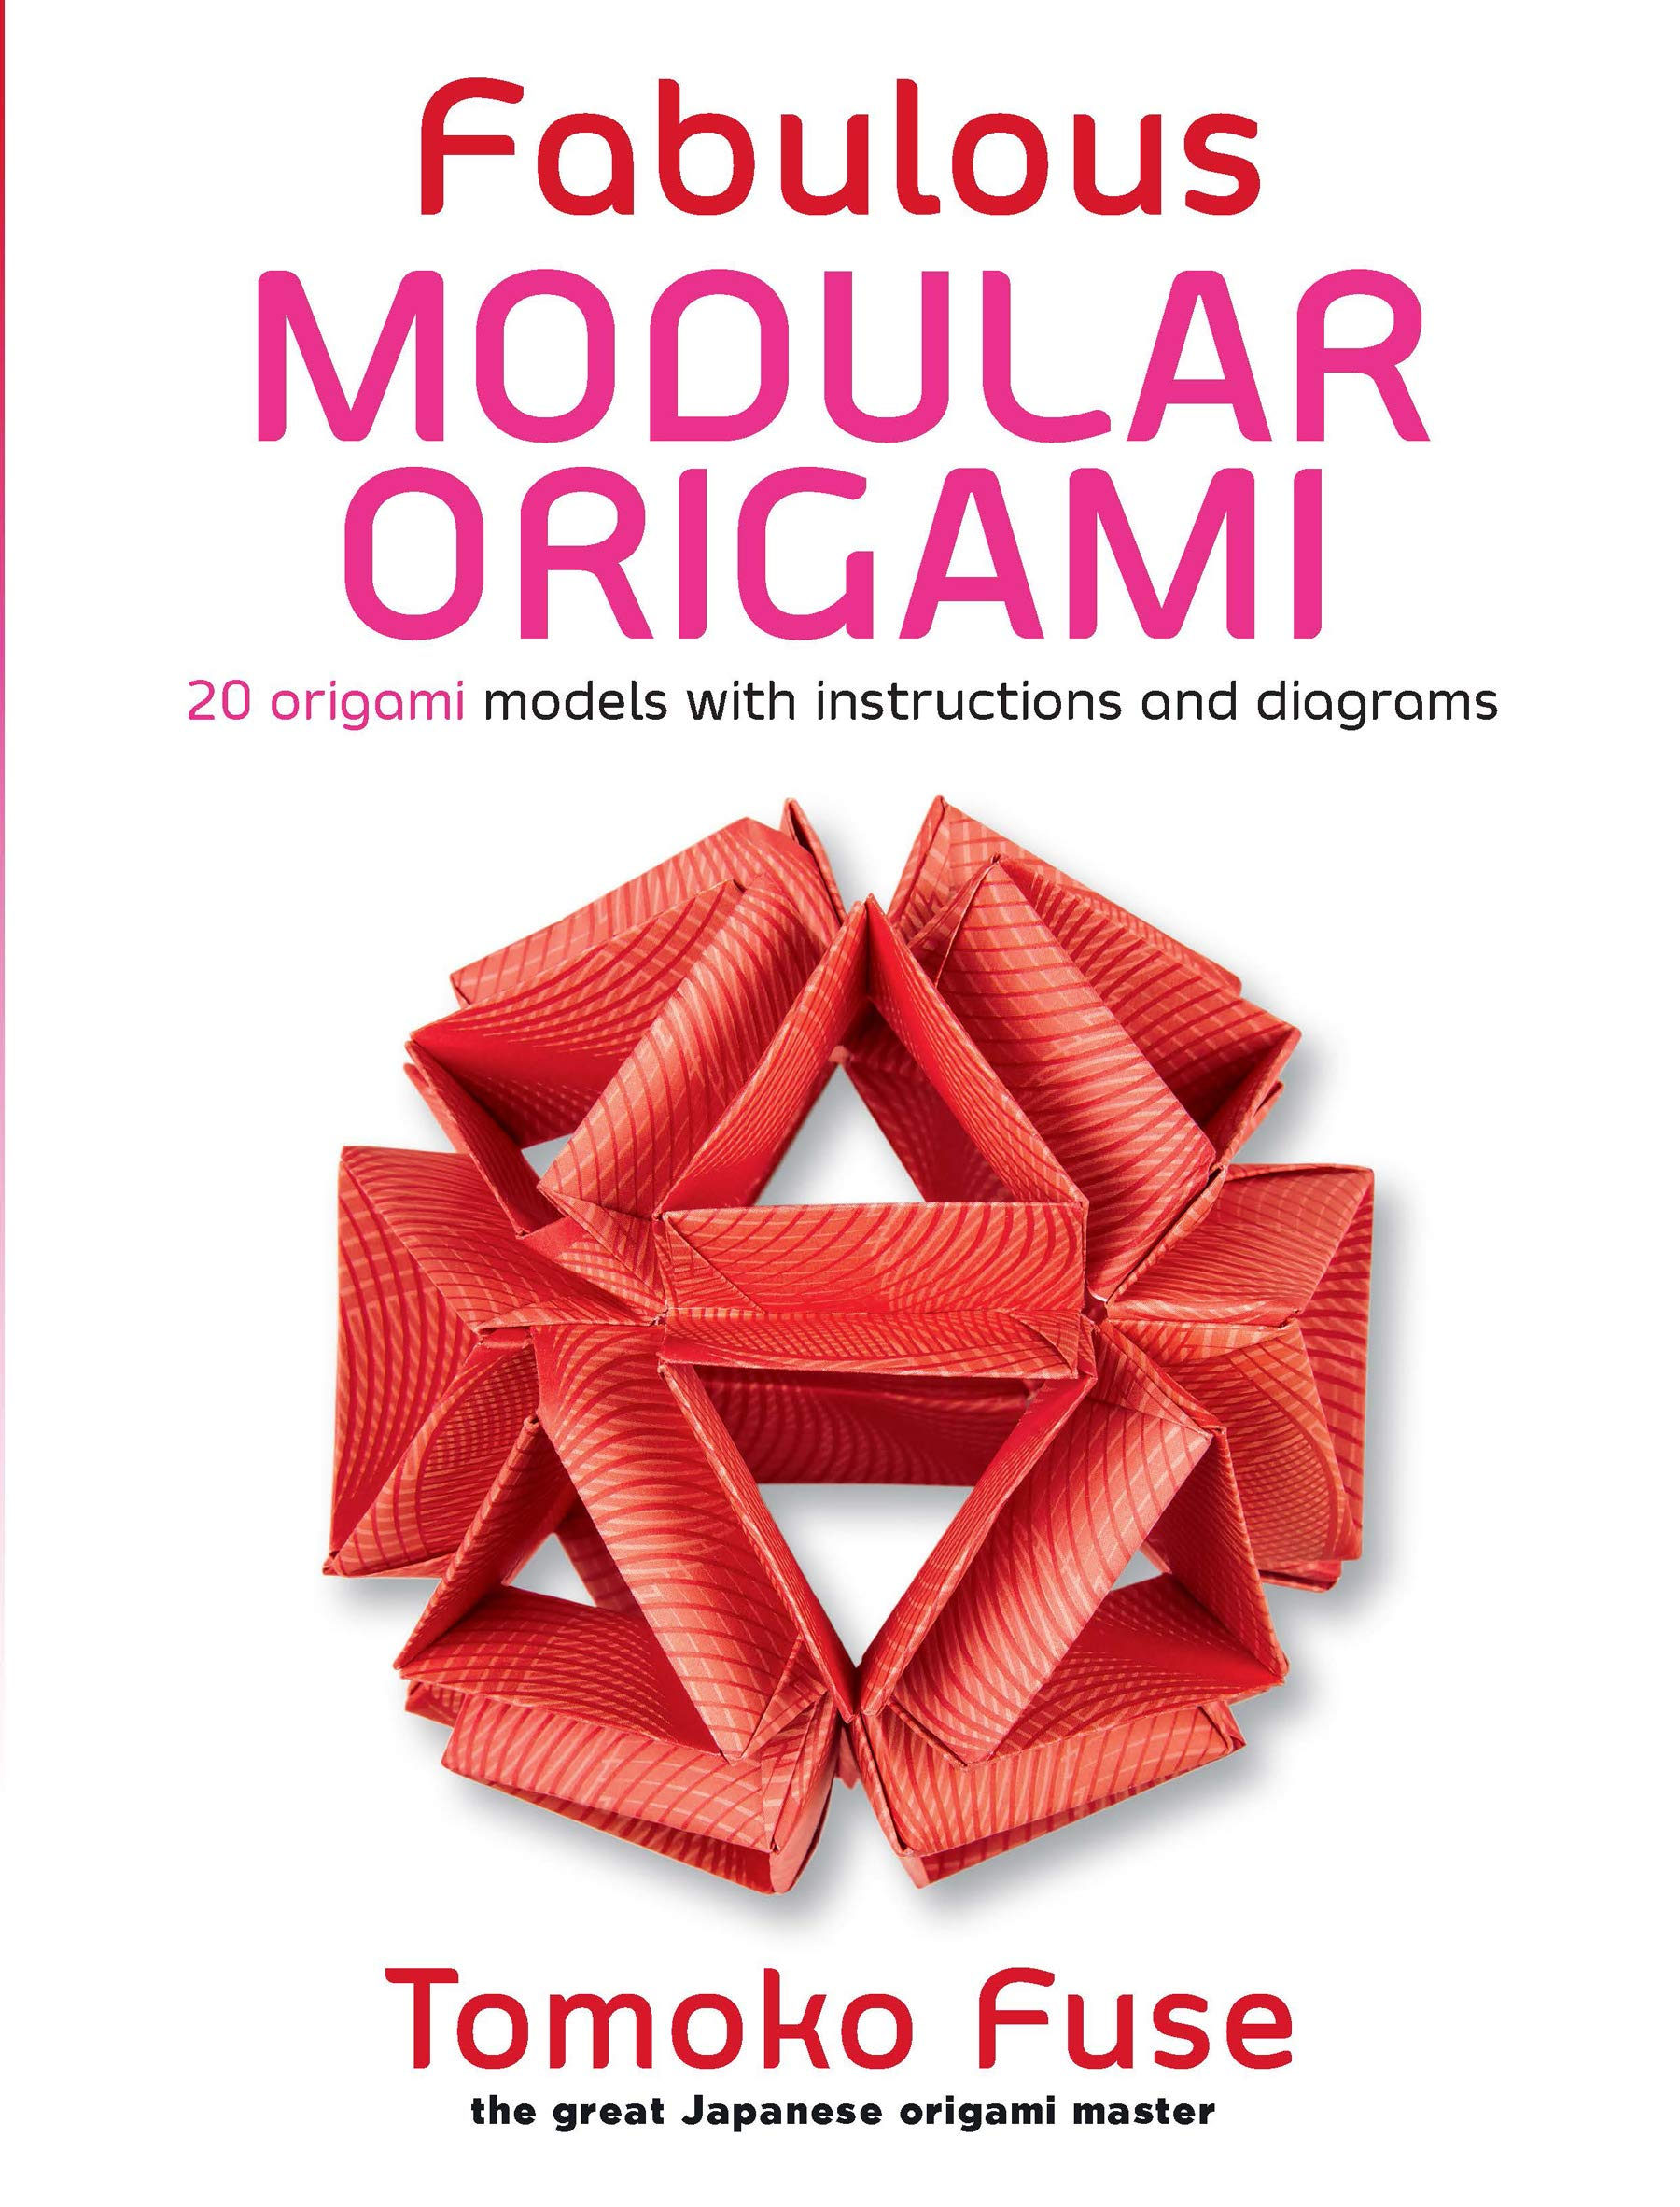 Fabulous Modular Origami 20 Models With Instructions And Boxes Tomoko Fuse S Diagrams 9780486826936 Books